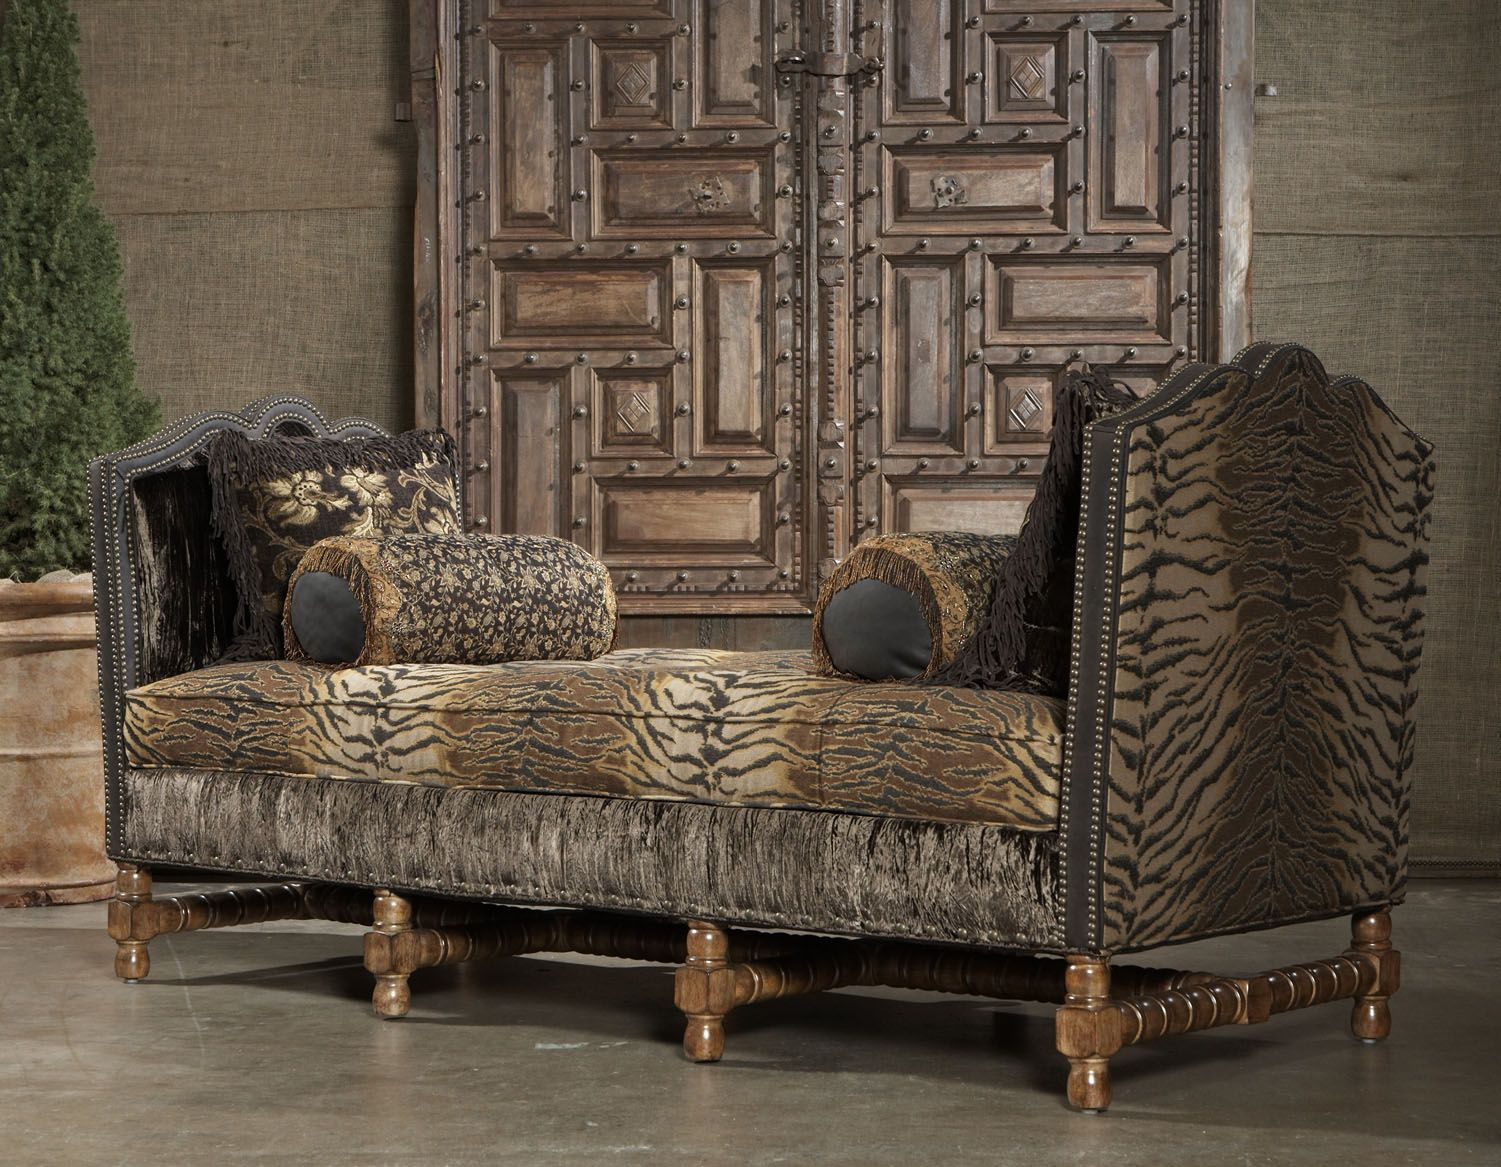 images about Furniture on Pinterest Chaise lounge chairs